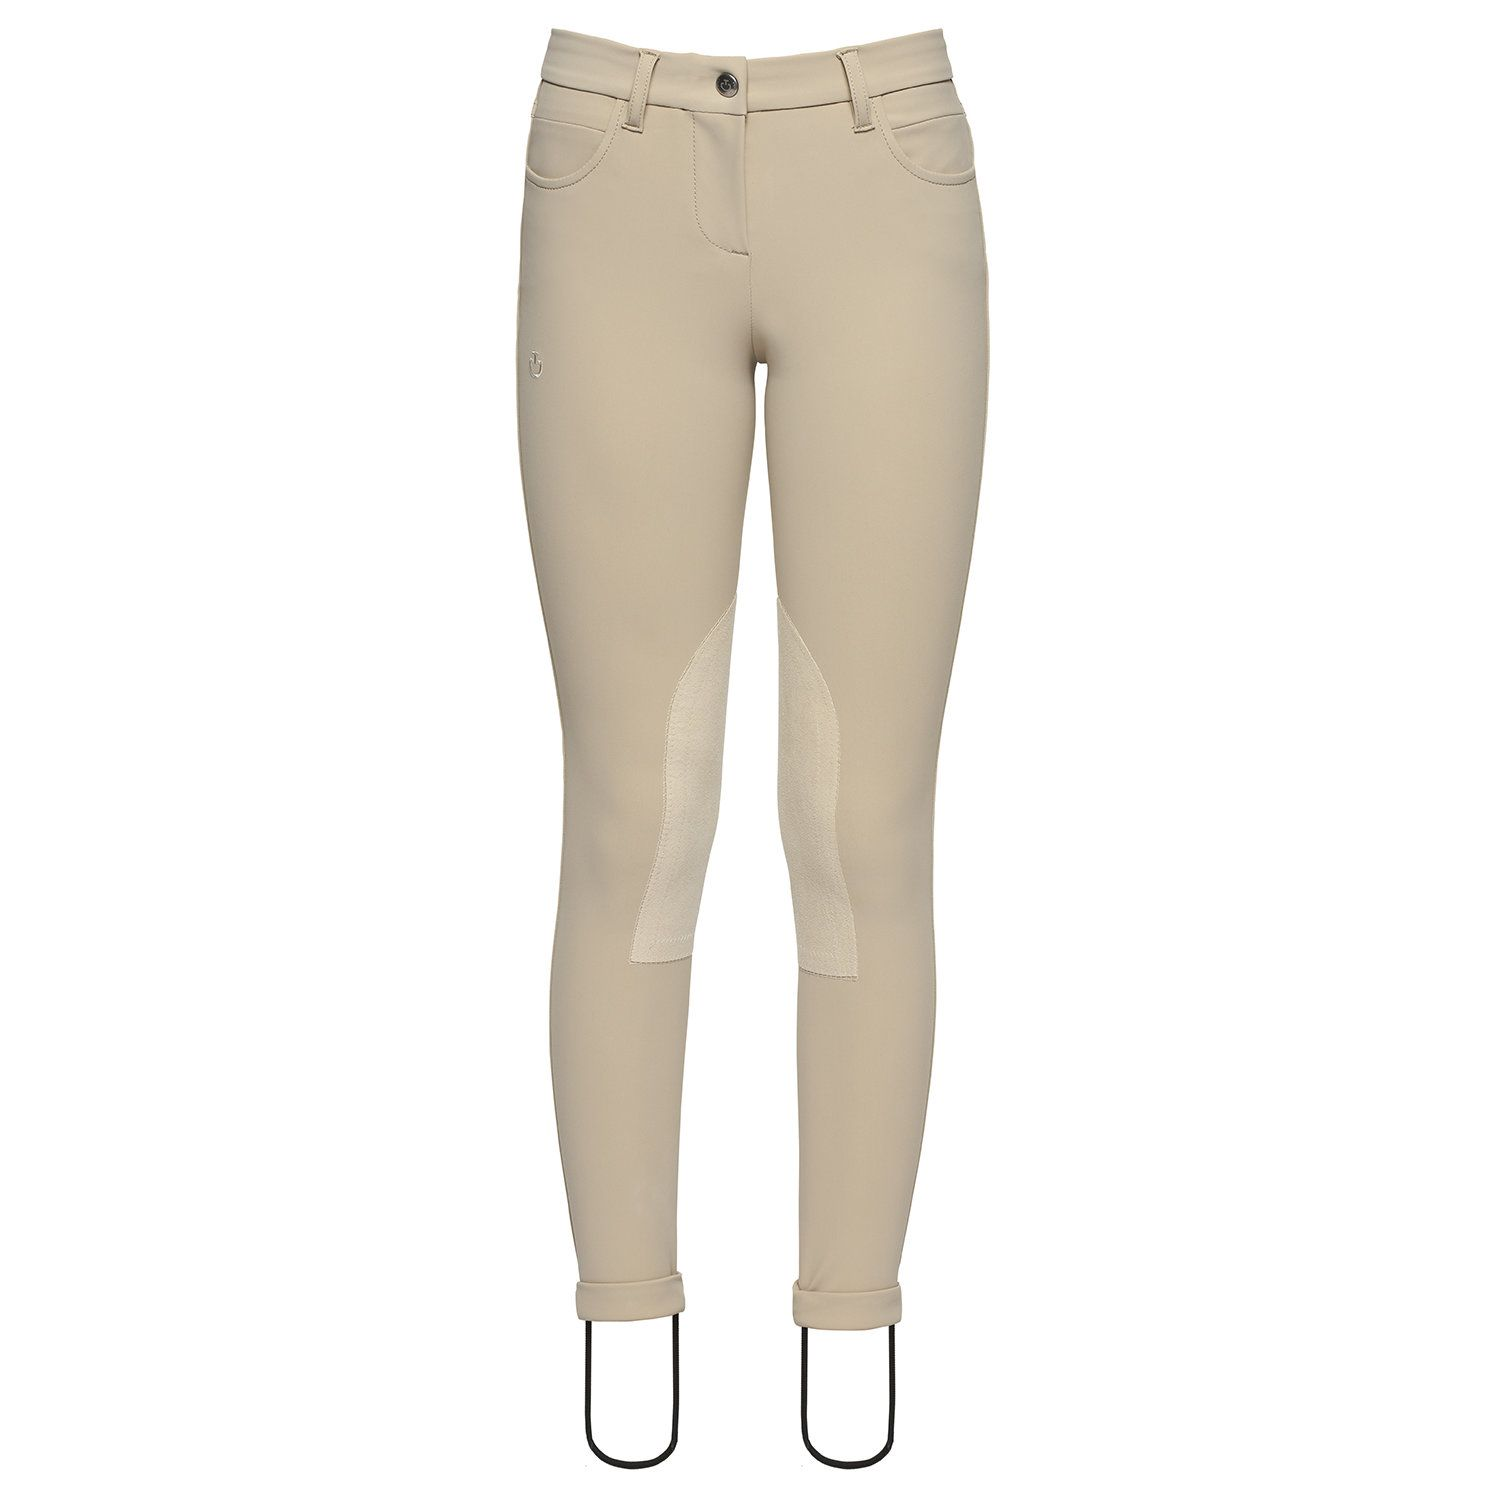 Knee Grip Breeches for Kids with Embroidered Logo